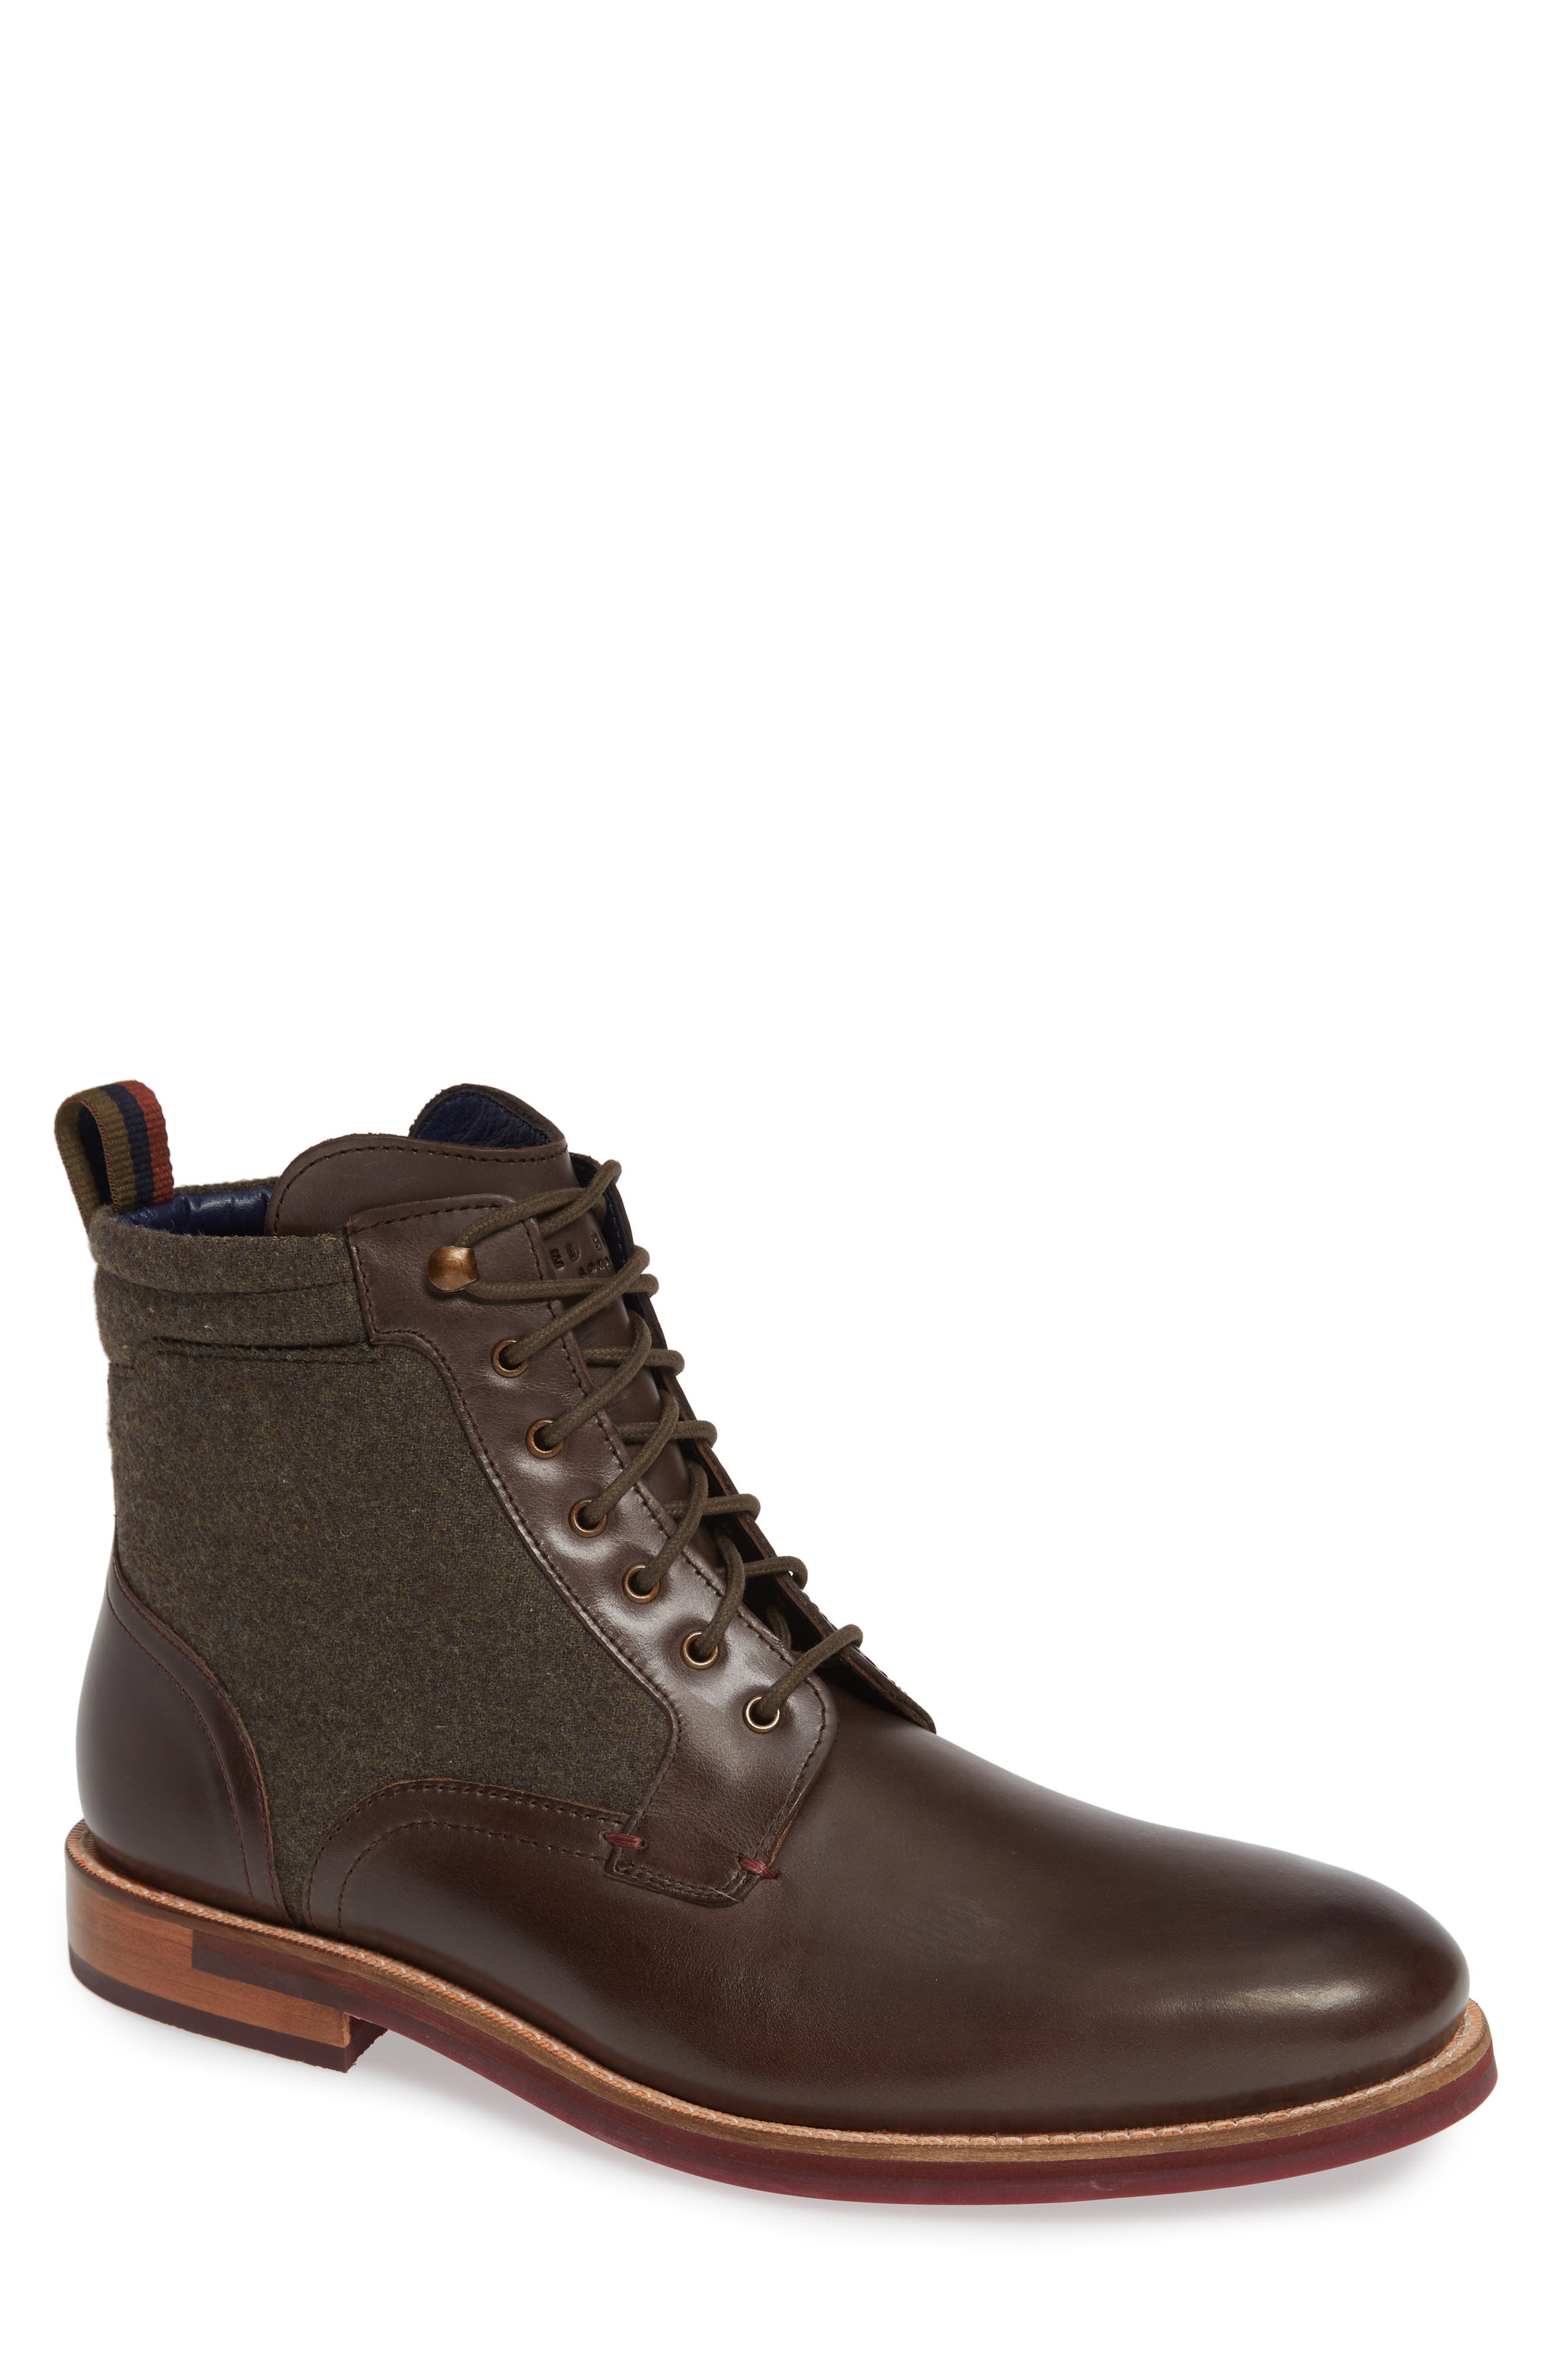 Axtoni Boot,                             Main thumbnail 1, color,                             BROWN LEATHER